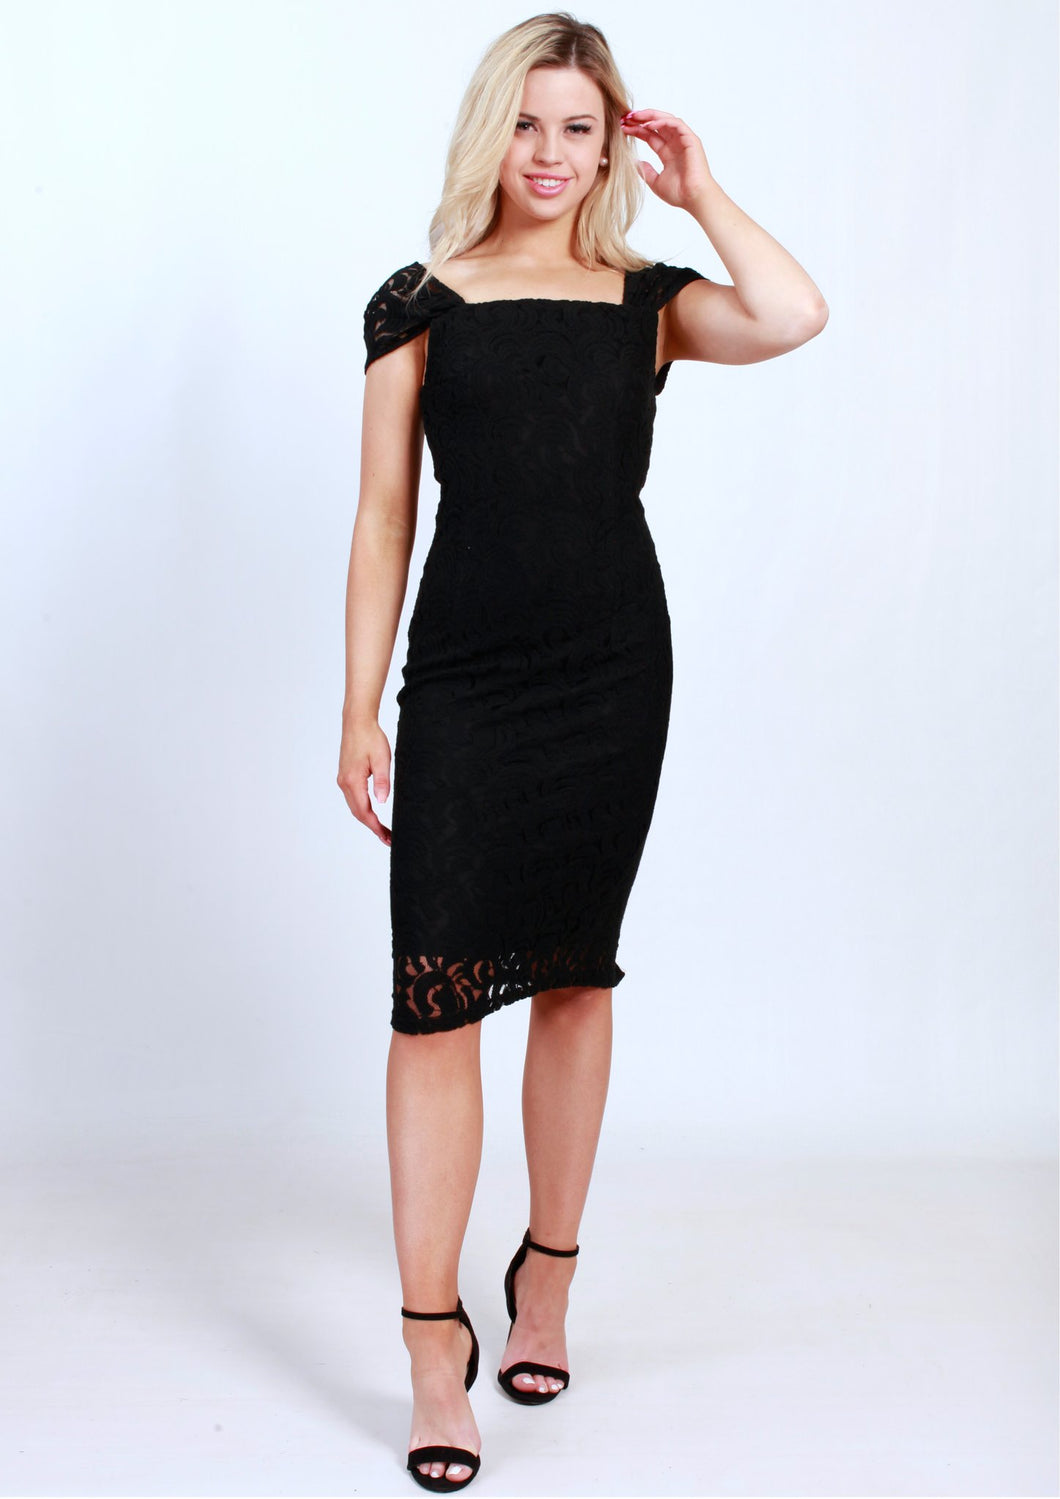 Lace Detail Black Dress